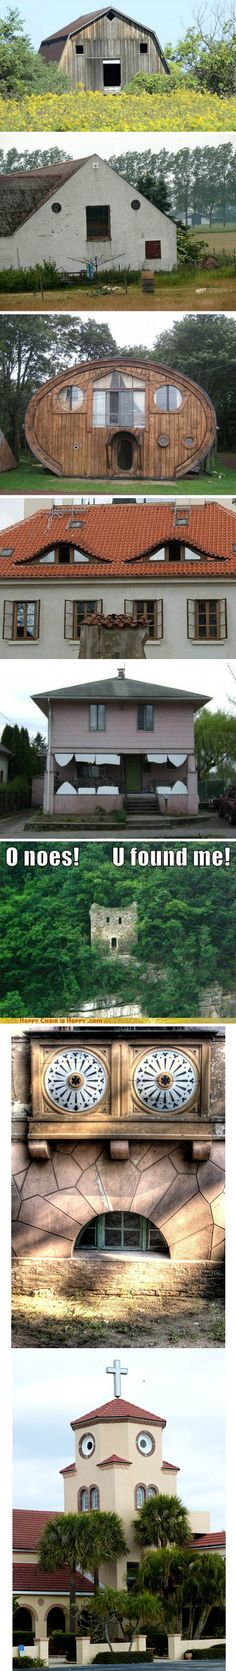 funny house faces